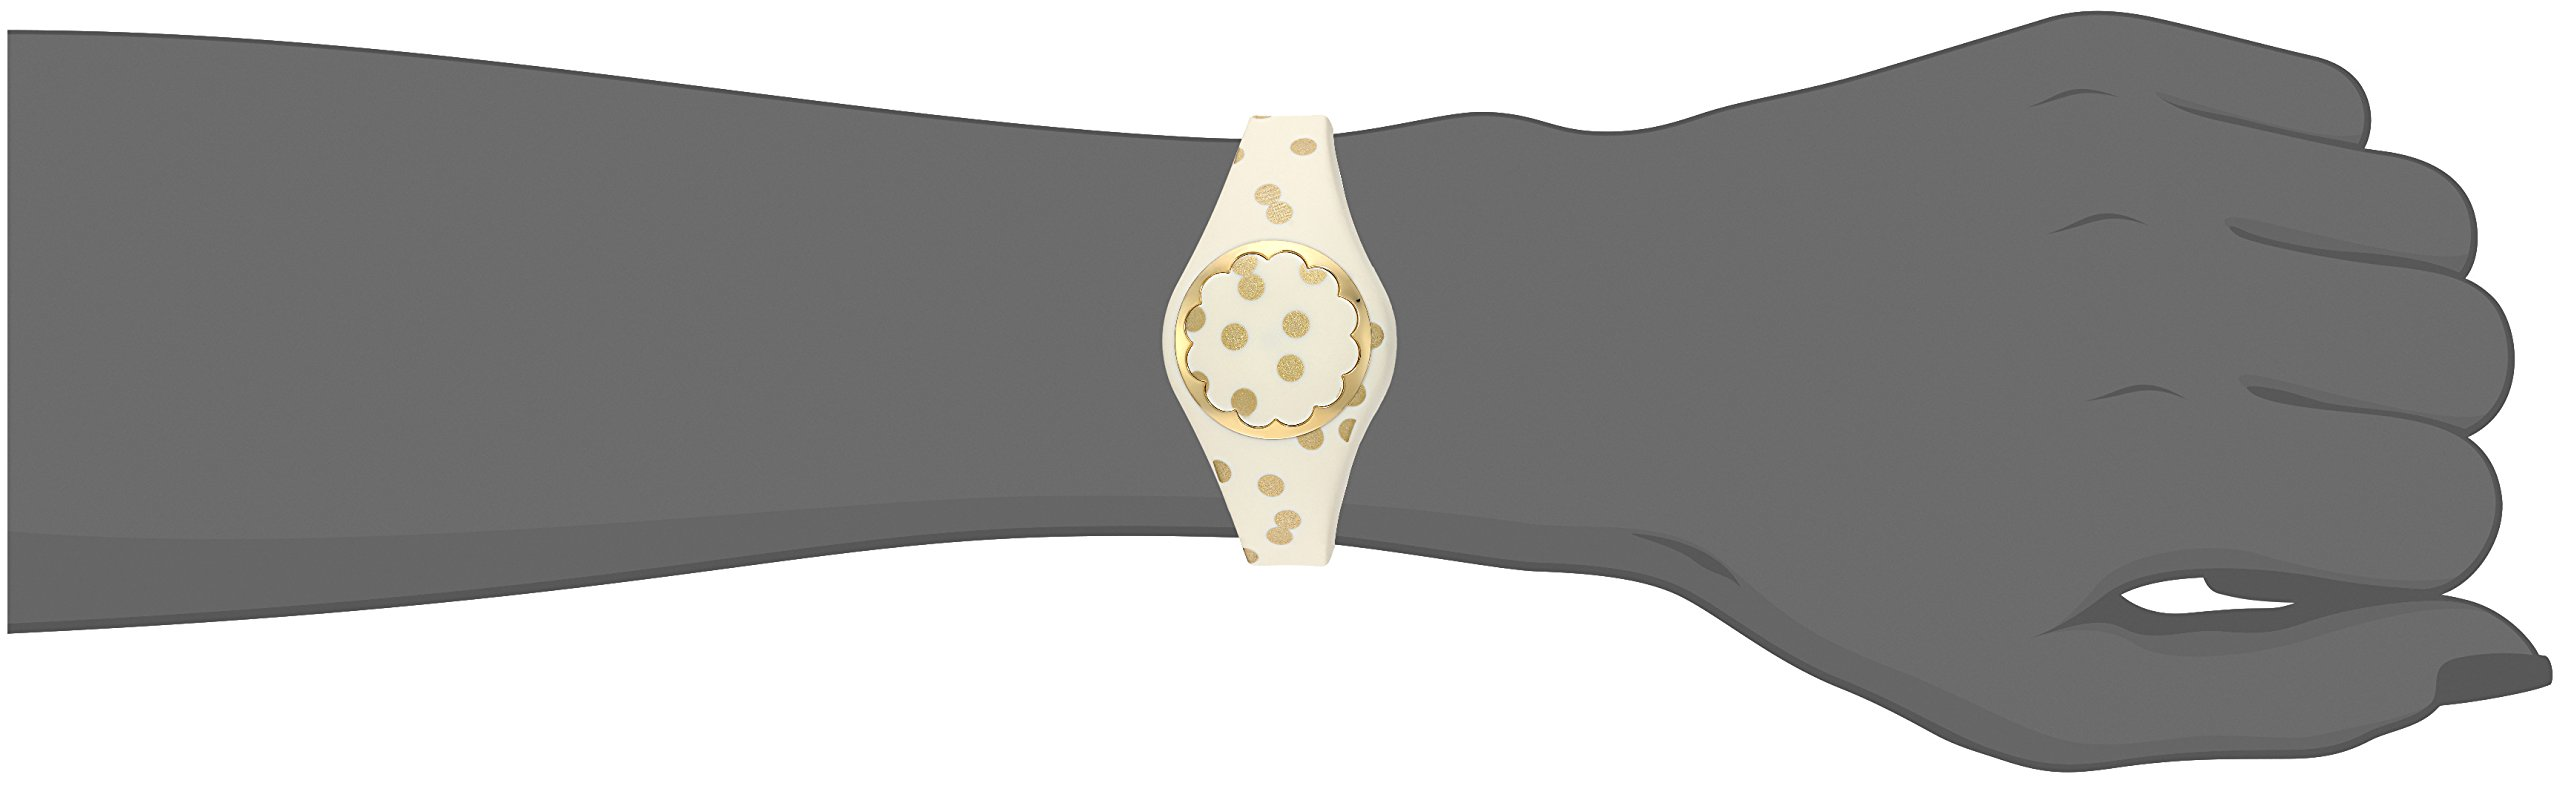 Kate Spade New York cream and gold dot scallop activity tracker by Kate Spade New York (Image #3)